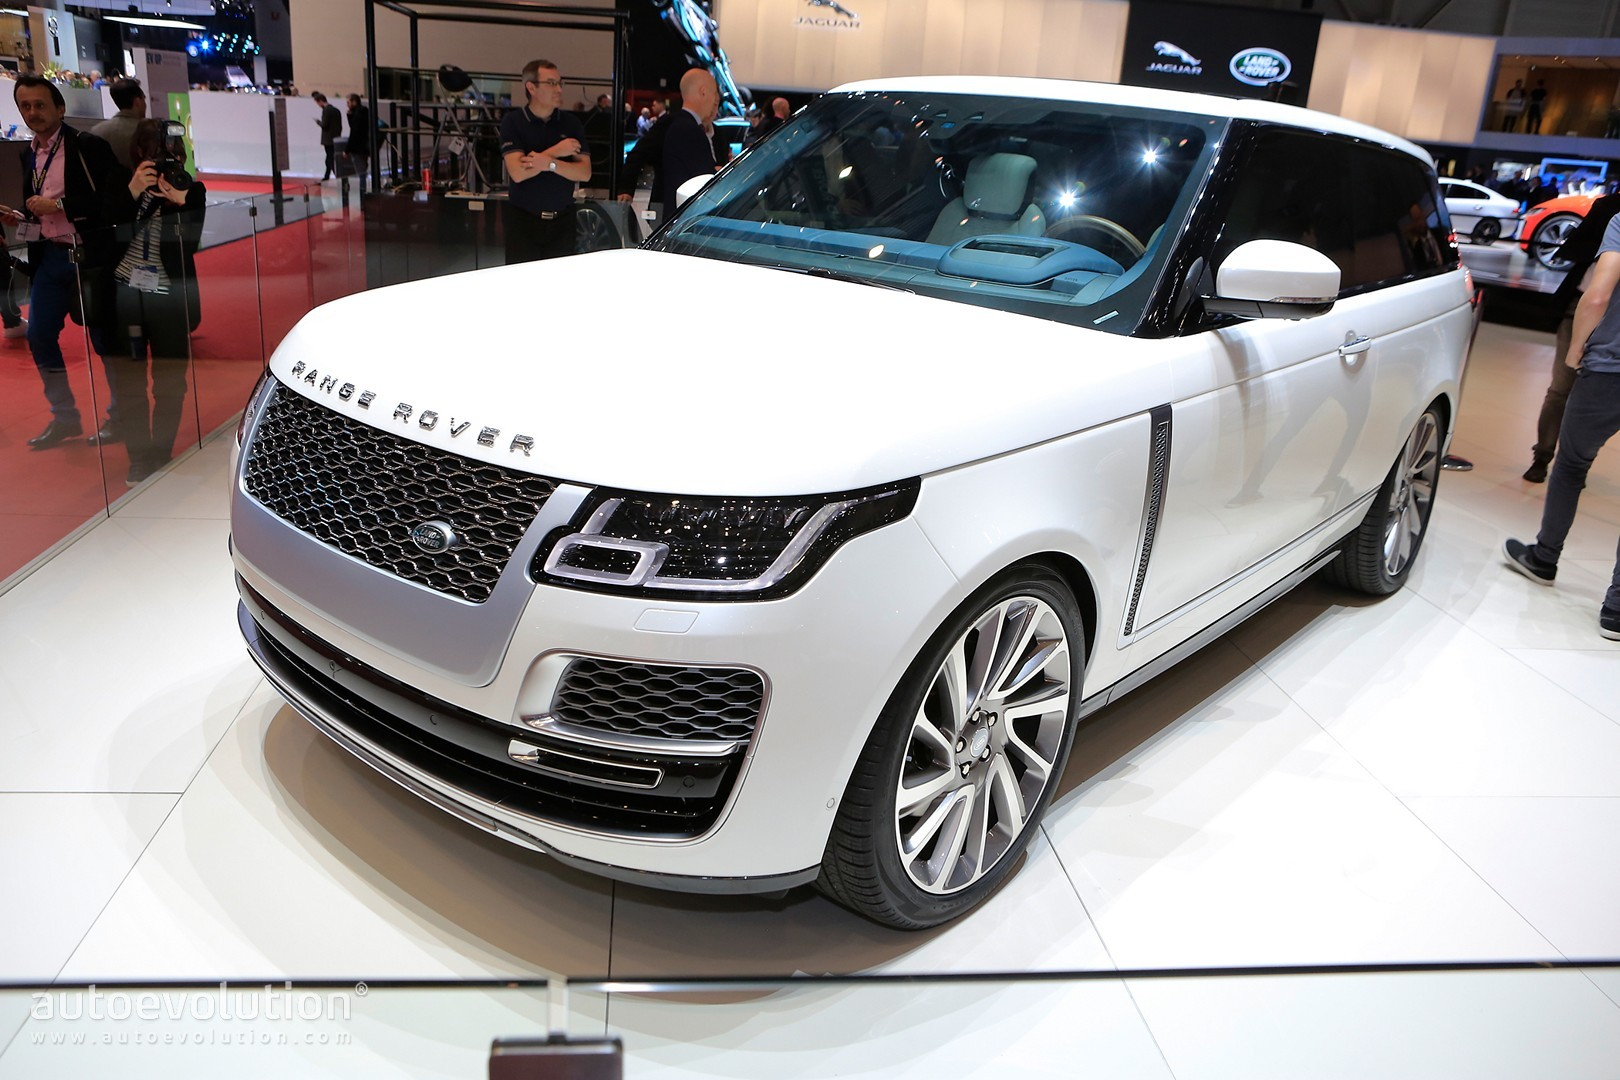 Range Rover Used For Sale >> 2021 Range Rover Switching From D7u To MLA Platform - autoevolution